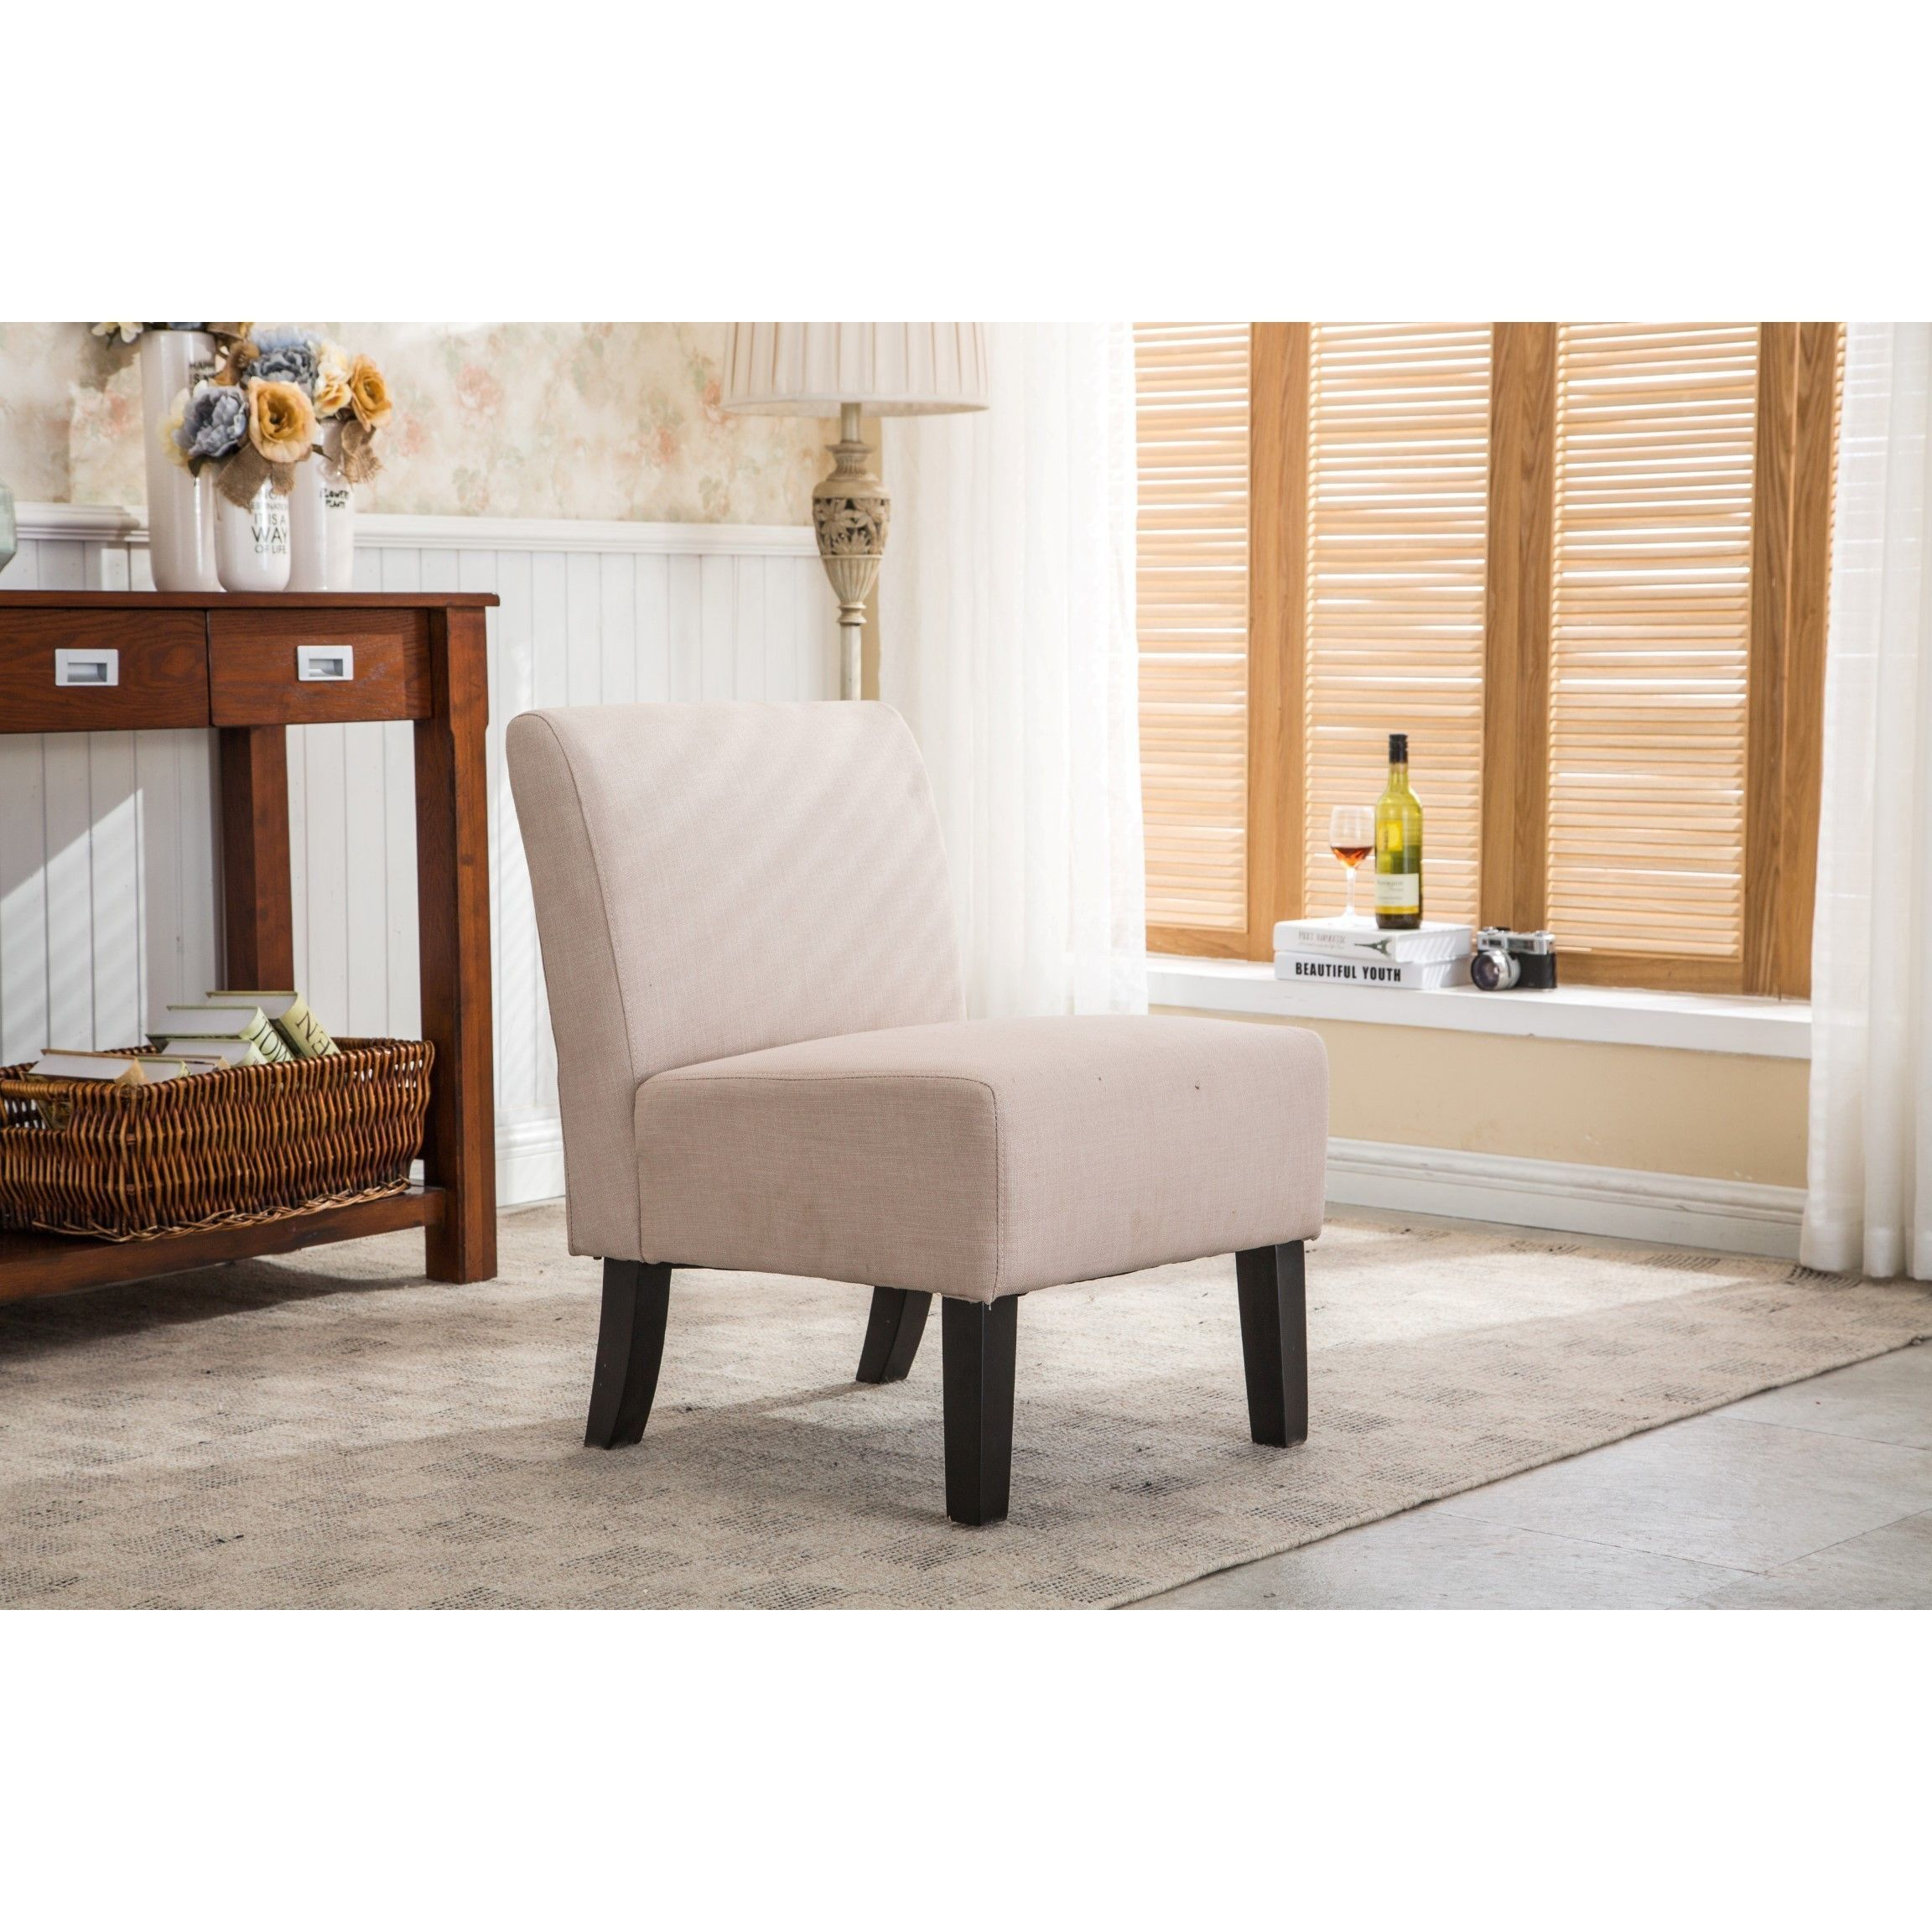 Provide Extra Seating With The Classic And Comfortable Design Of Samantha Armless Slipper Chair